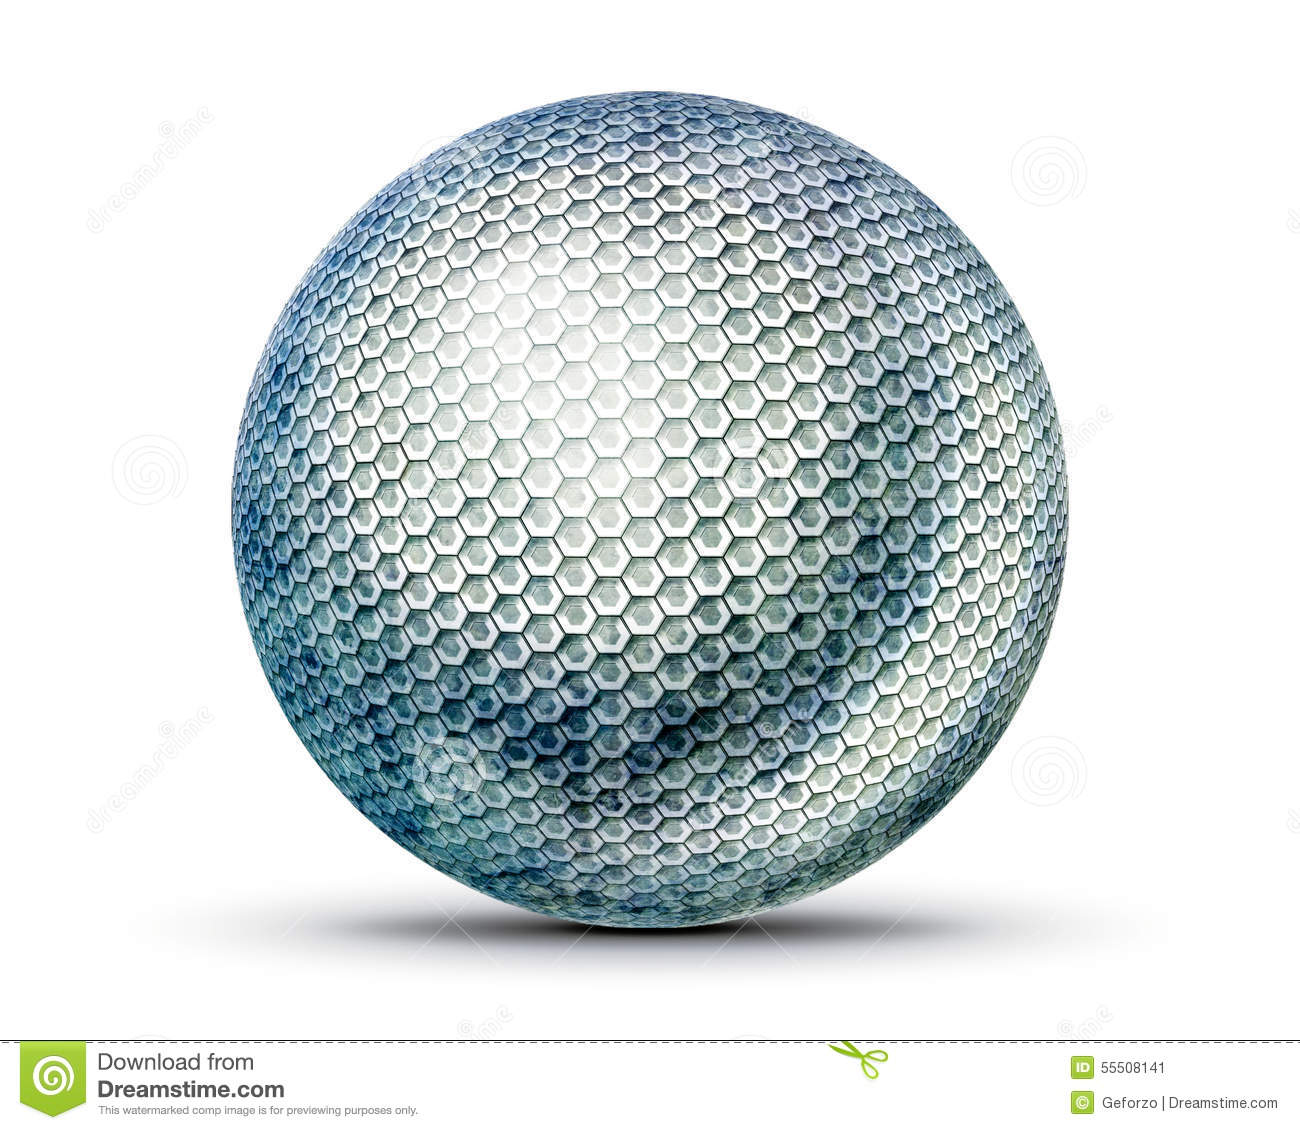 Hexagon Wallpaper 3d Hexagon Sphere Stock Image Illustration Of Background